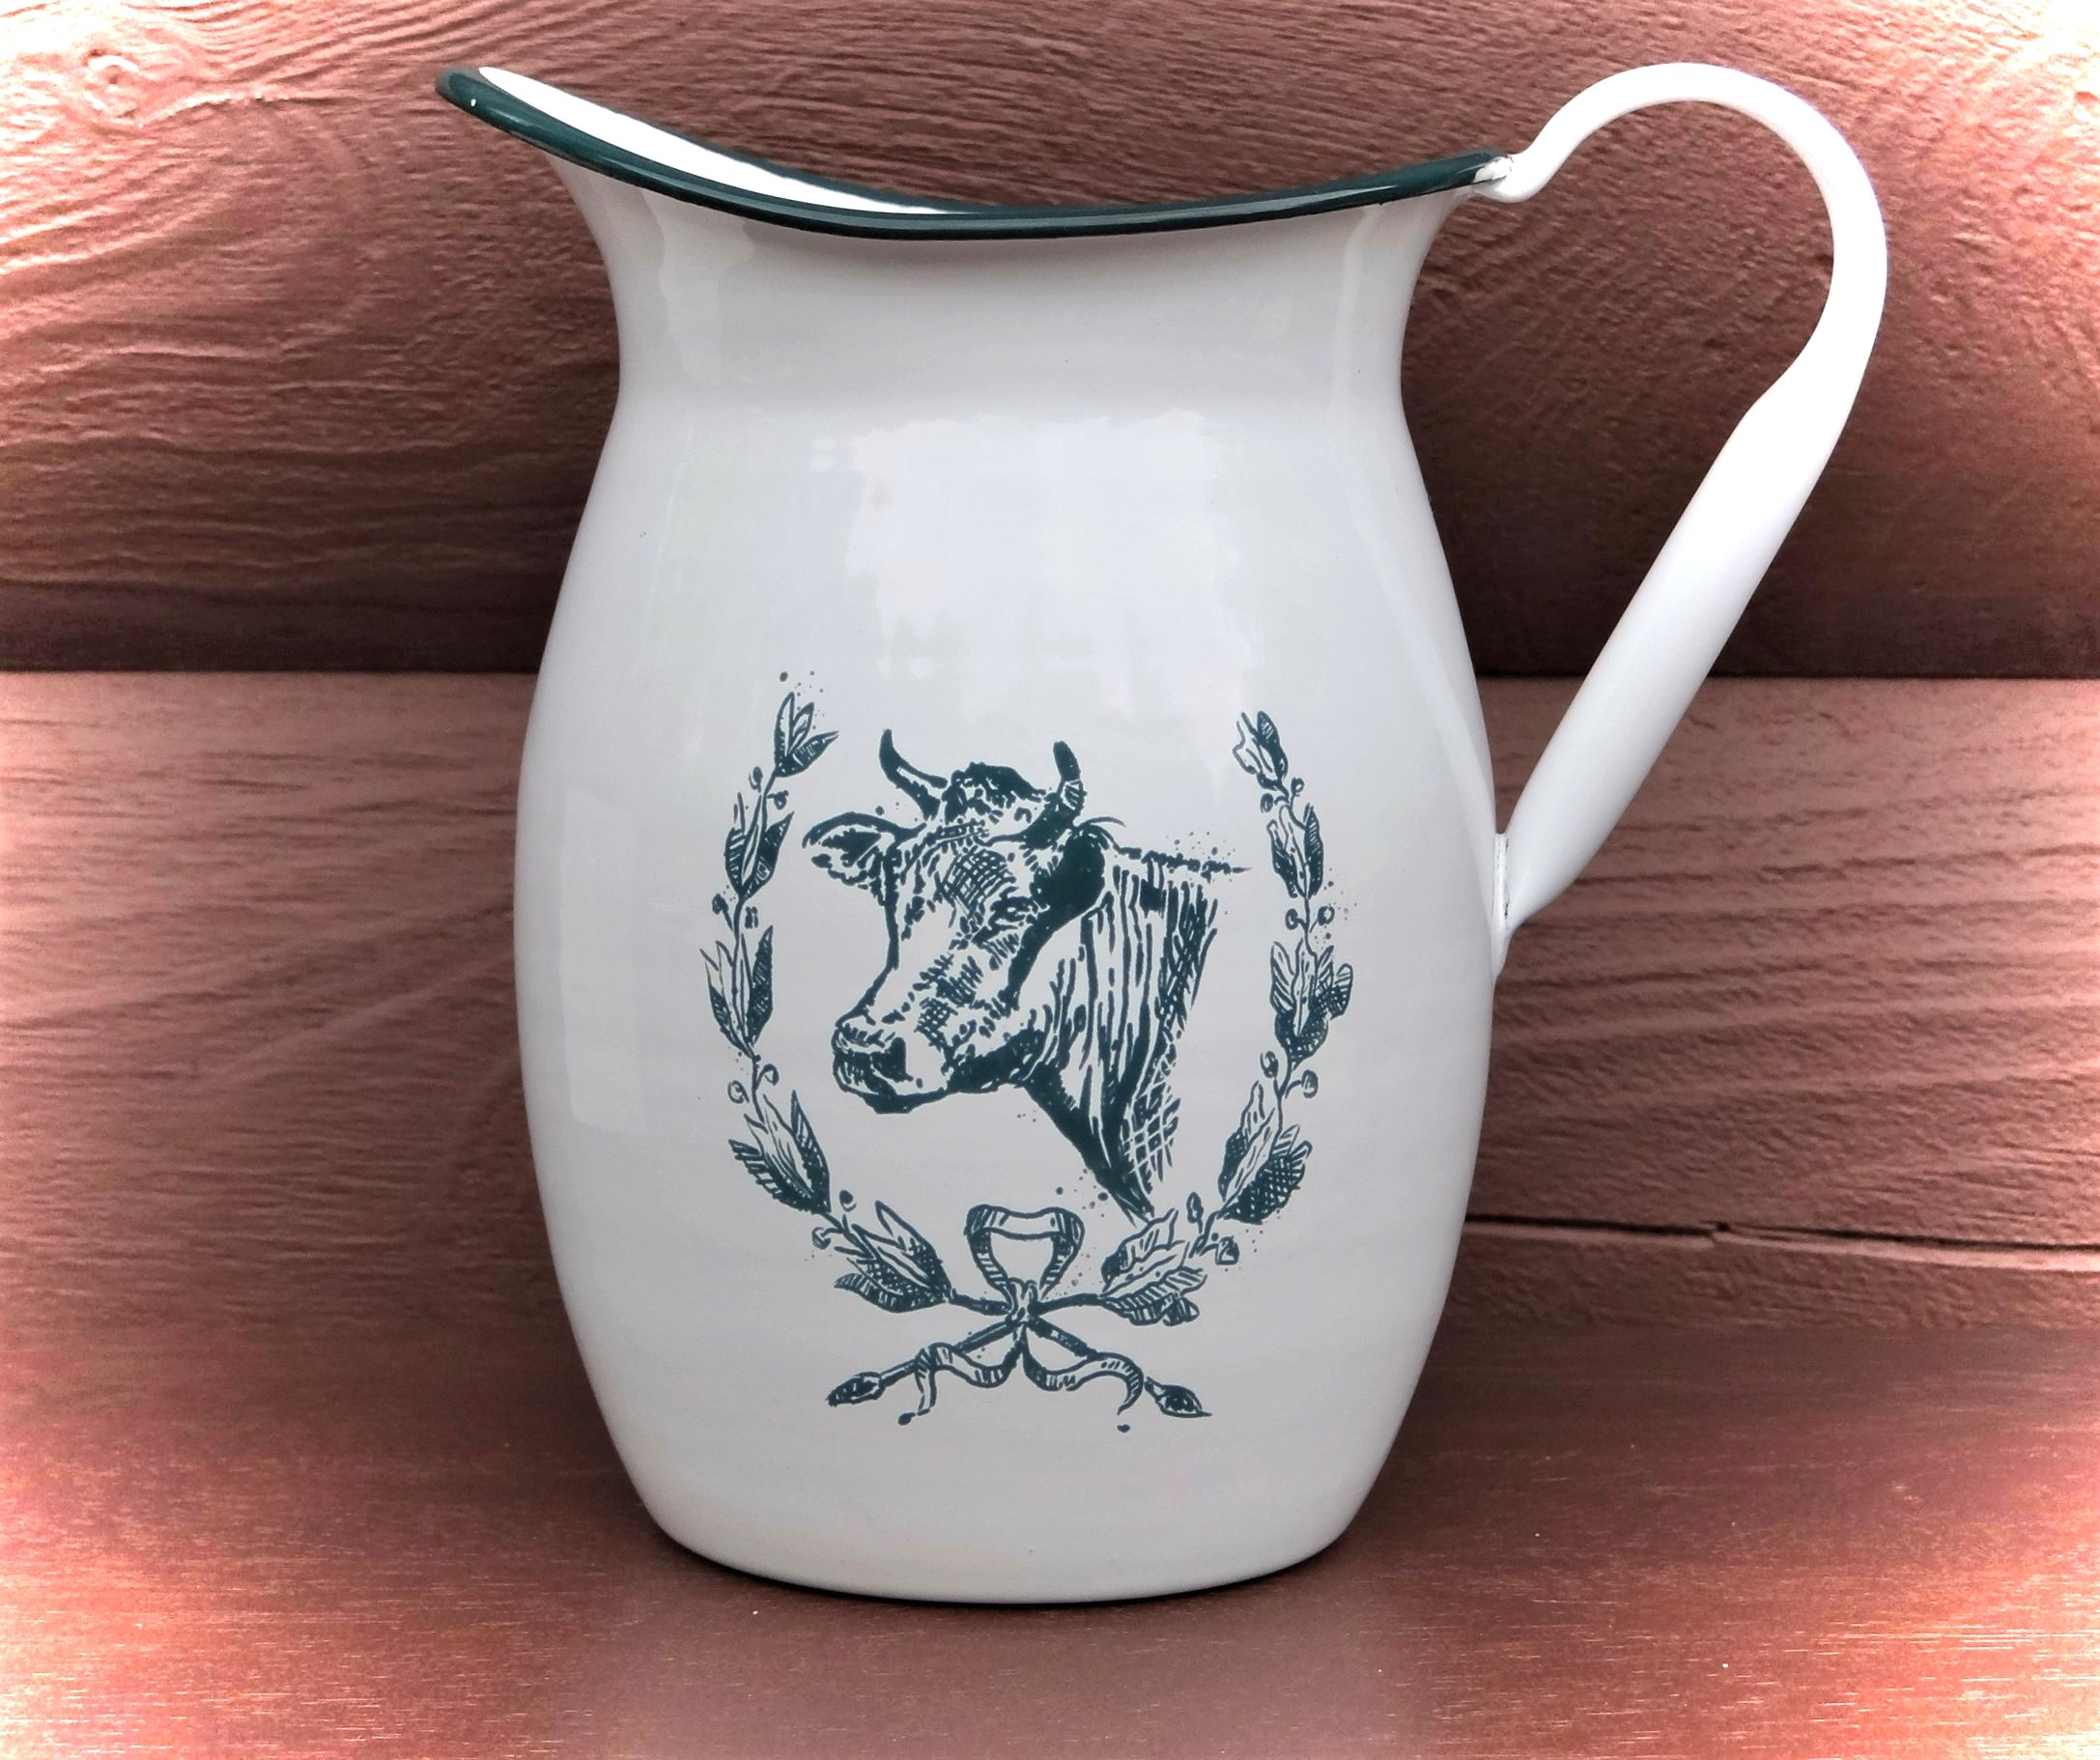 White enamel water/milk pitcher.